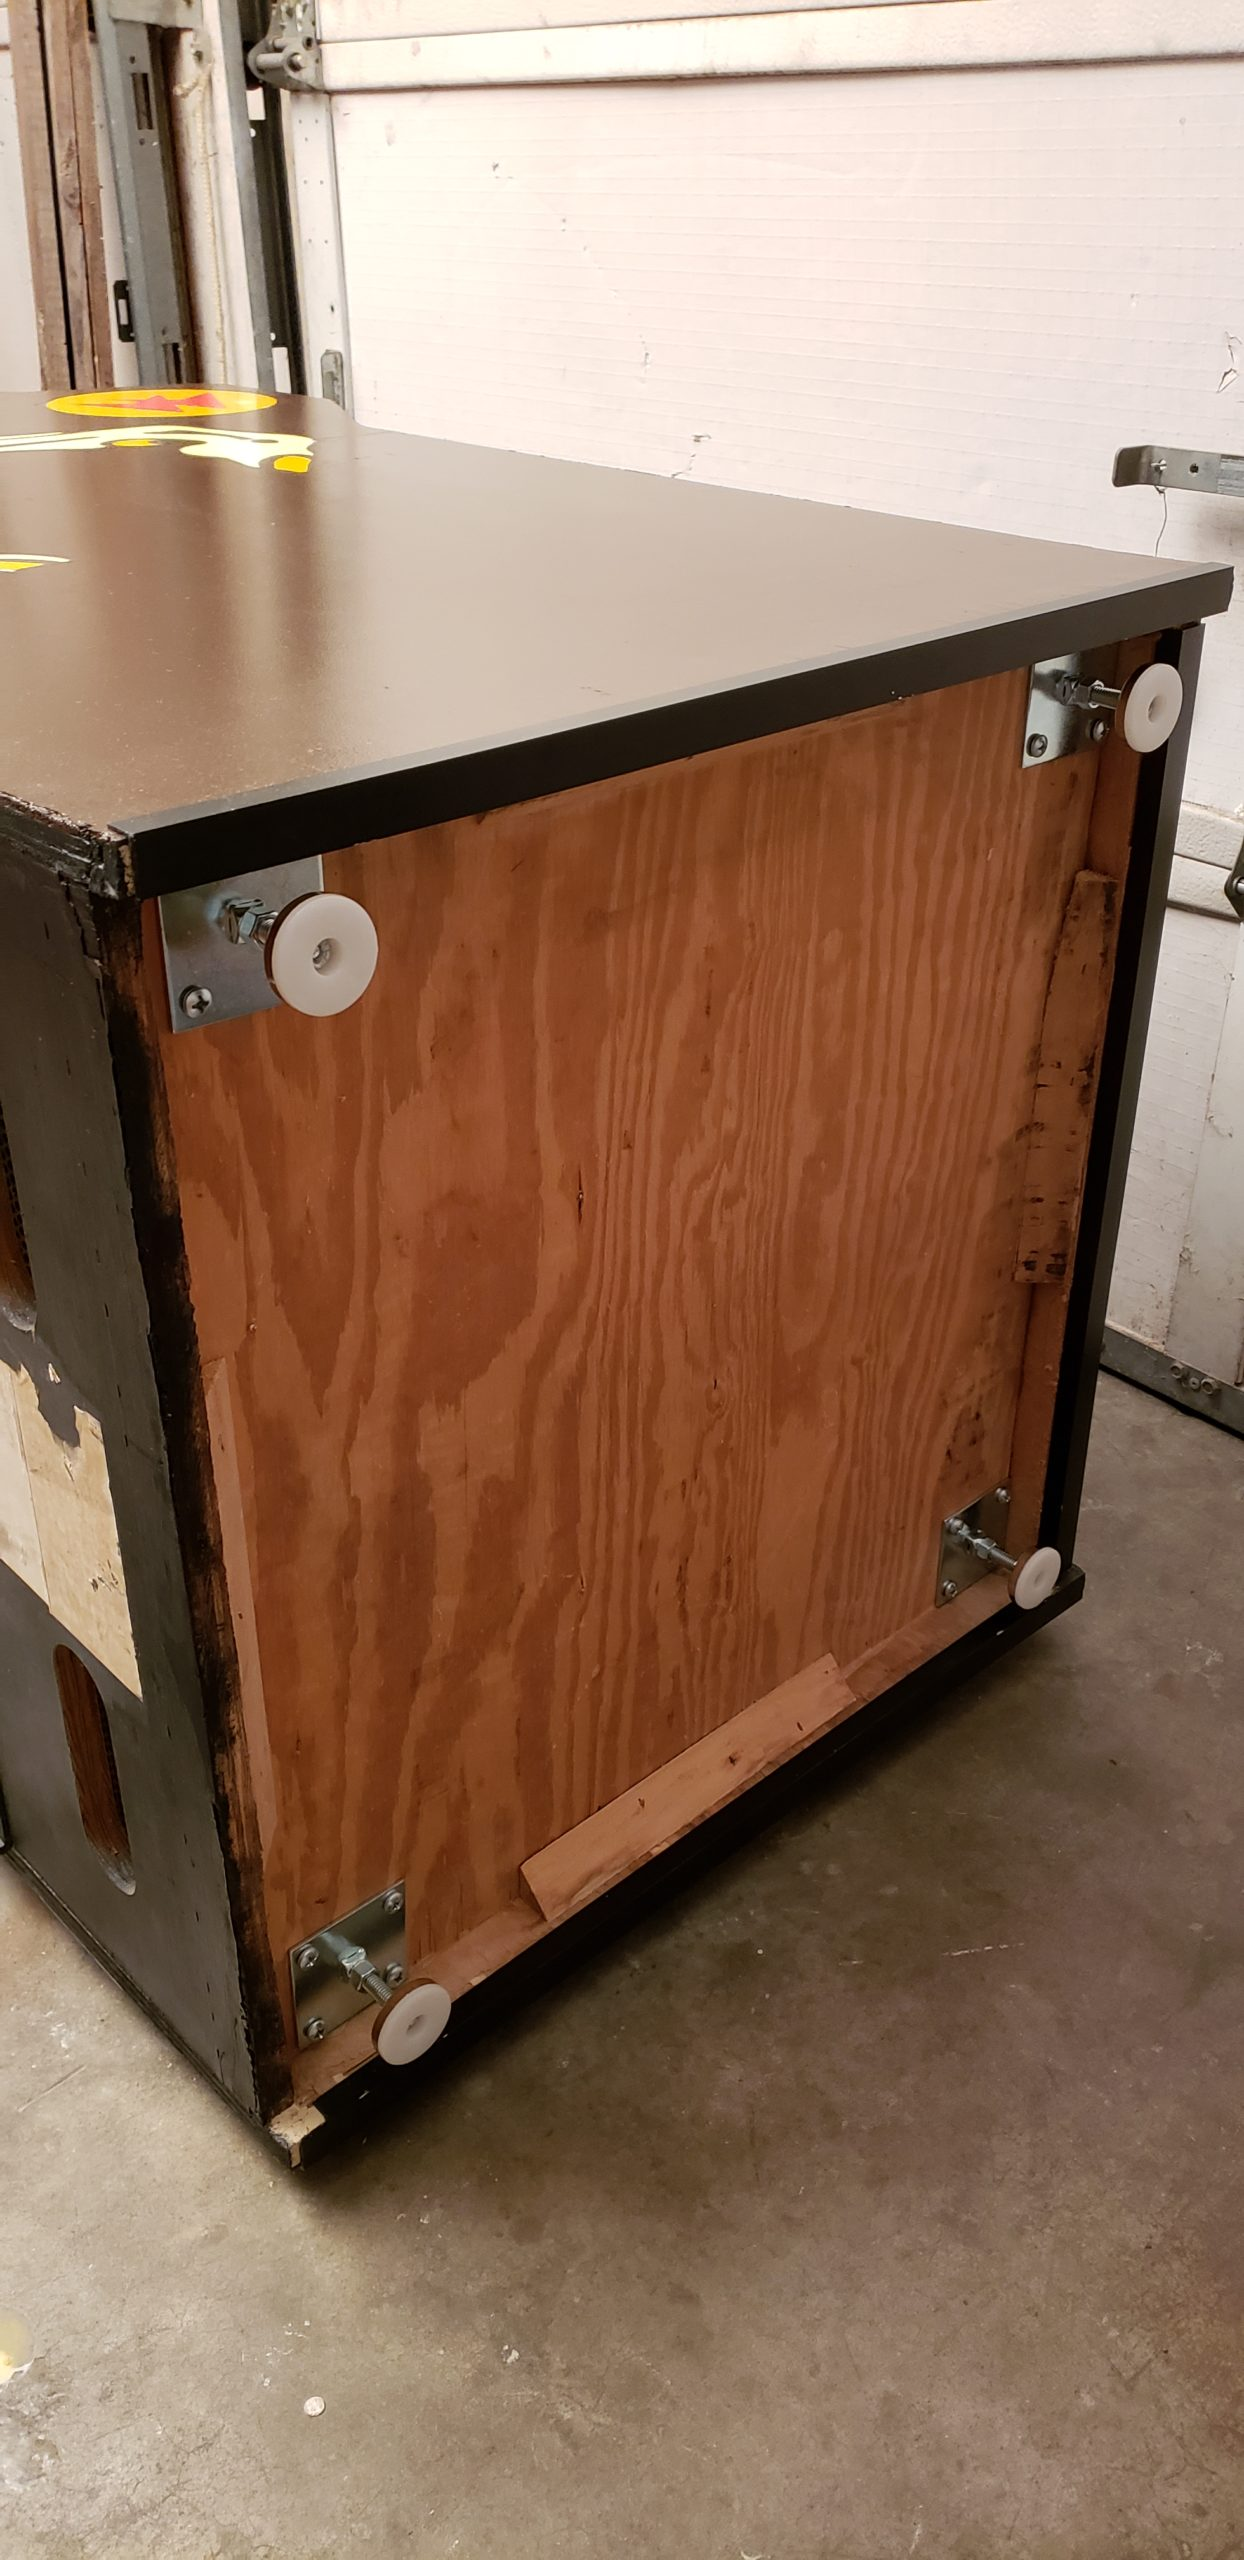 bottom of cabinet with feet